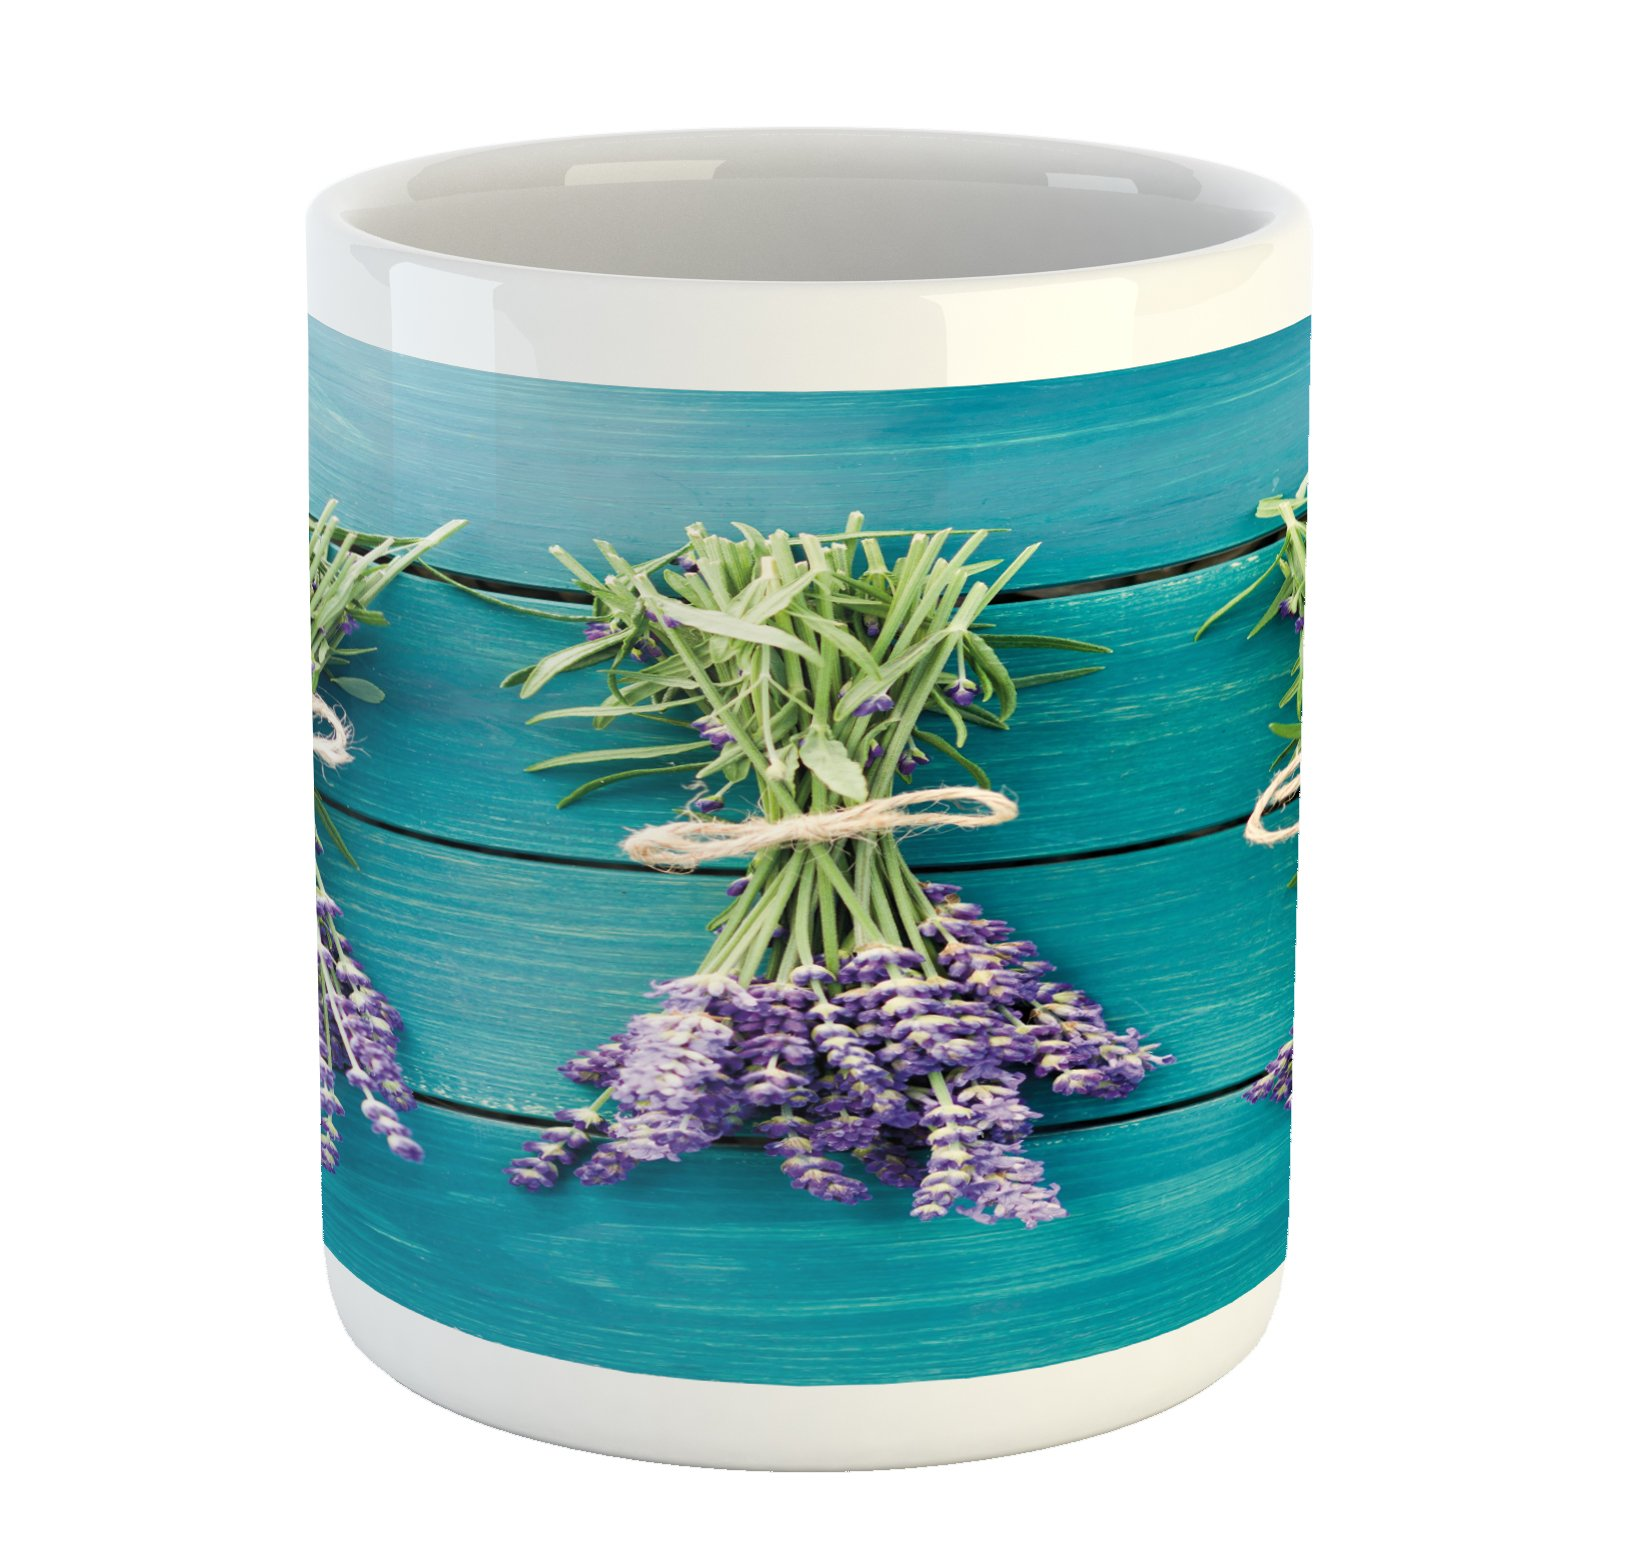 Lunarable Lavender Mug, Fresh Lavender Bouquets on Blue Wooden Planks Rustic Relaxing Spa, Printed Ceramic Coffee Mug Water Tea Drinks Cup, Sky Blue Lavender Green